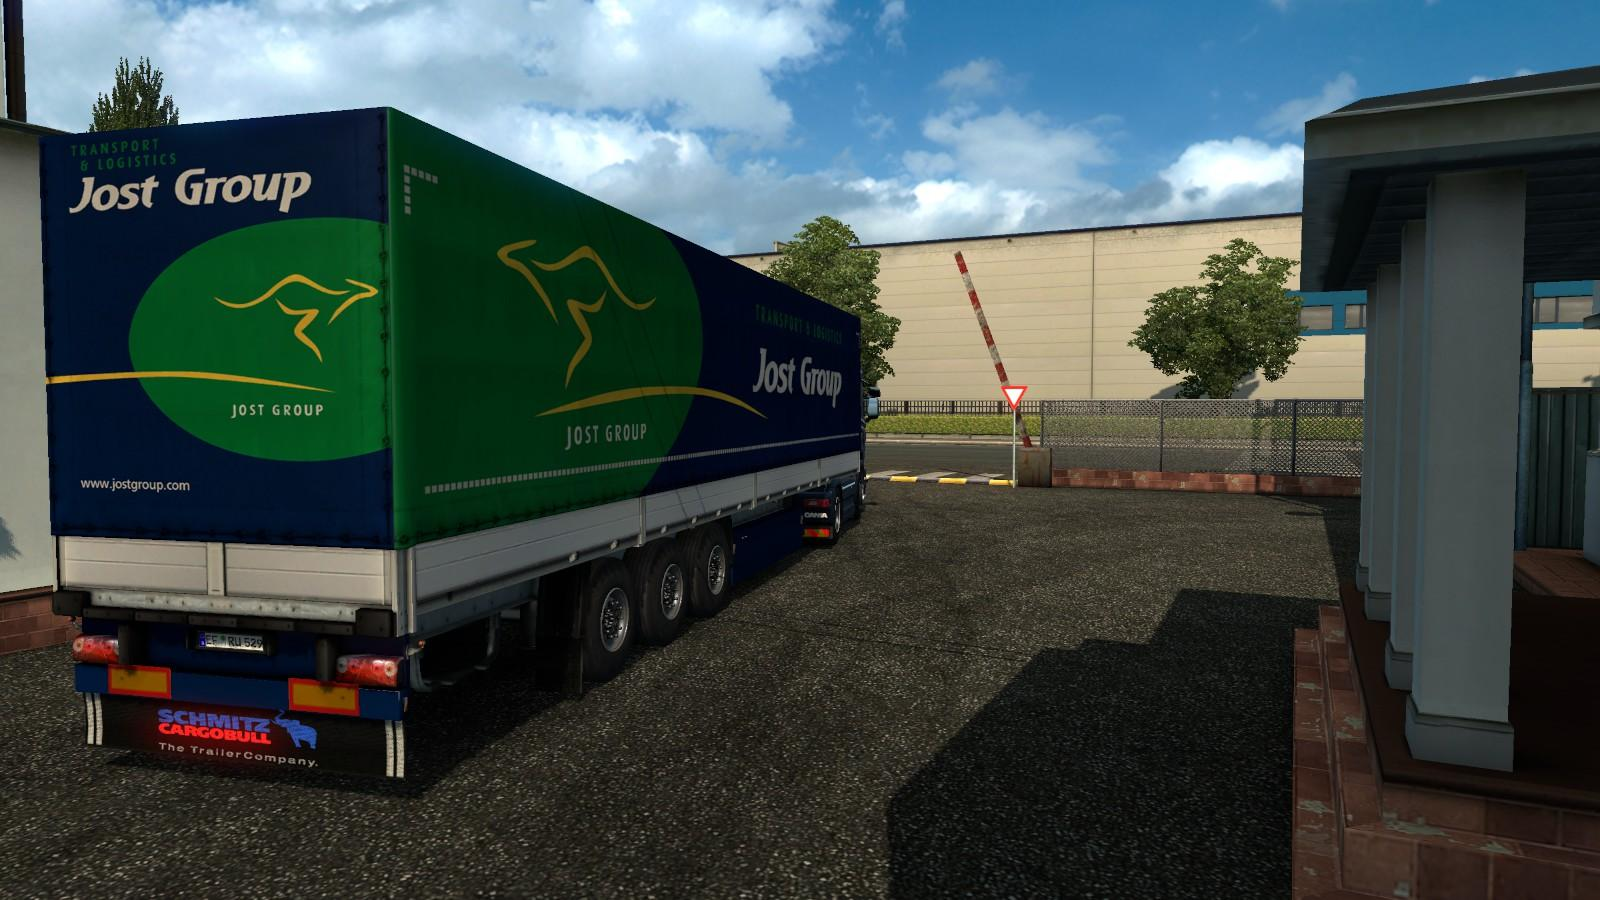 jost-group-trailer-47-cargo-1-21-x_2